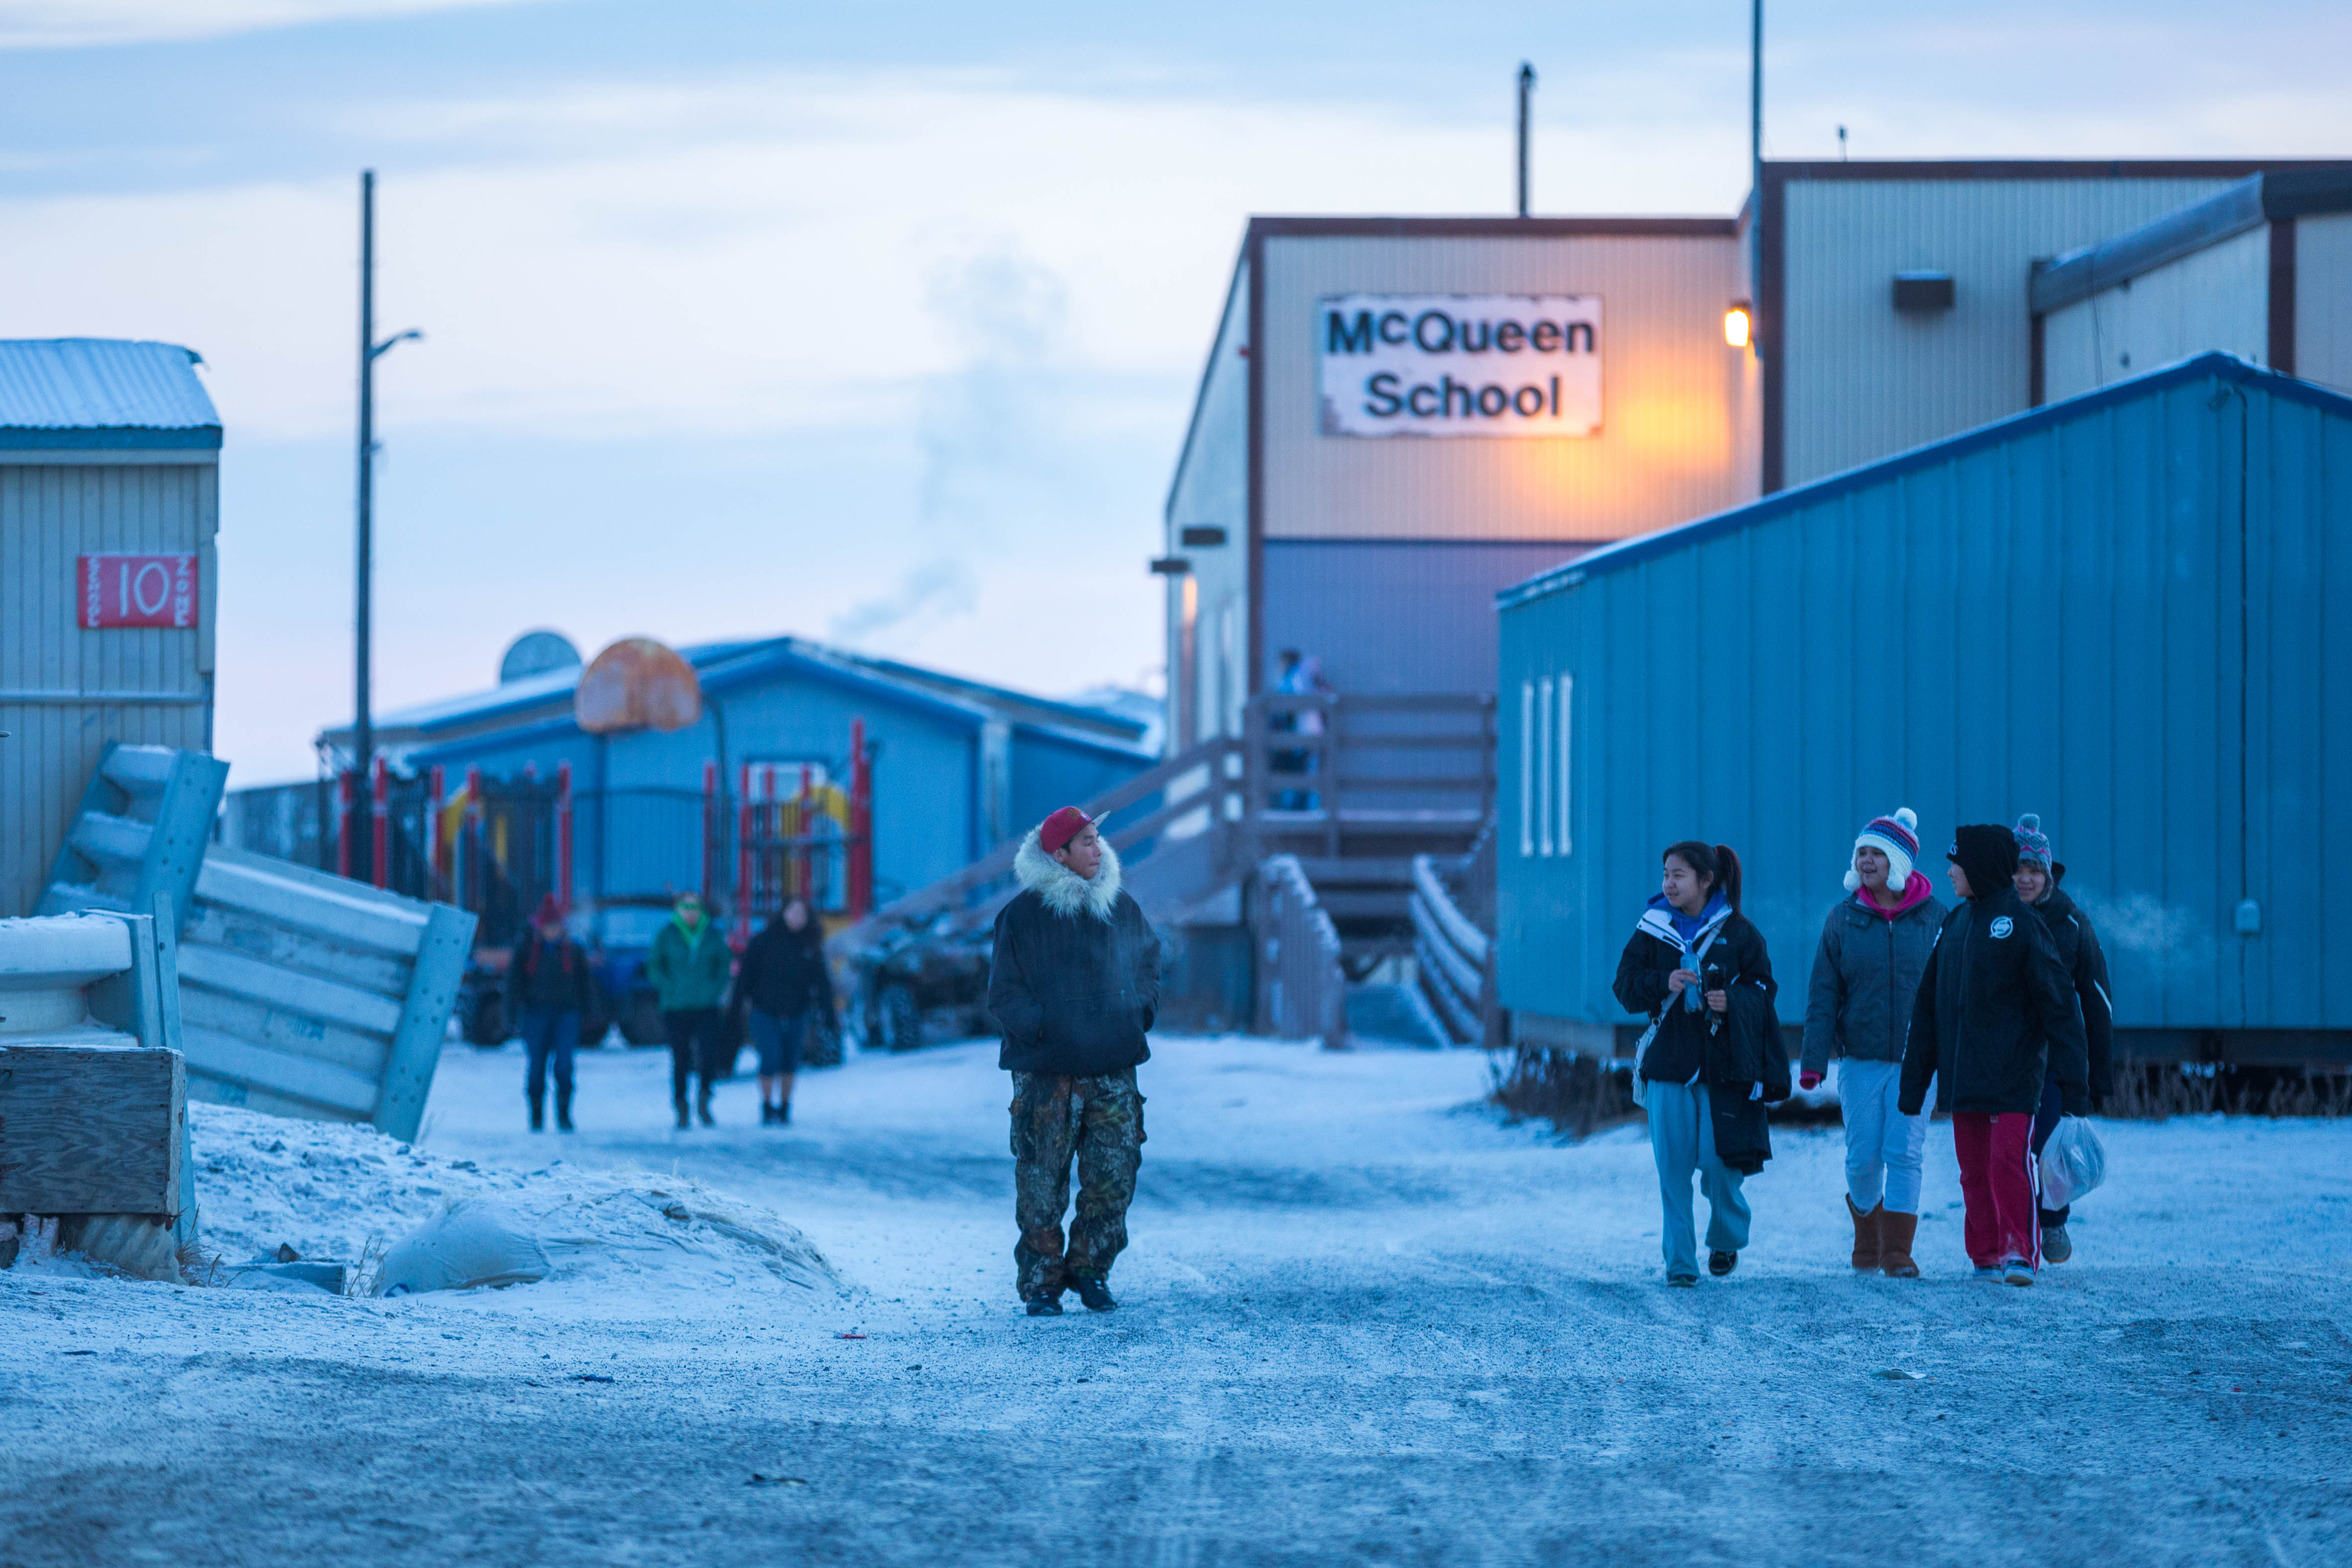 Education should be cornerstone of Arctic policy, says Canadian report